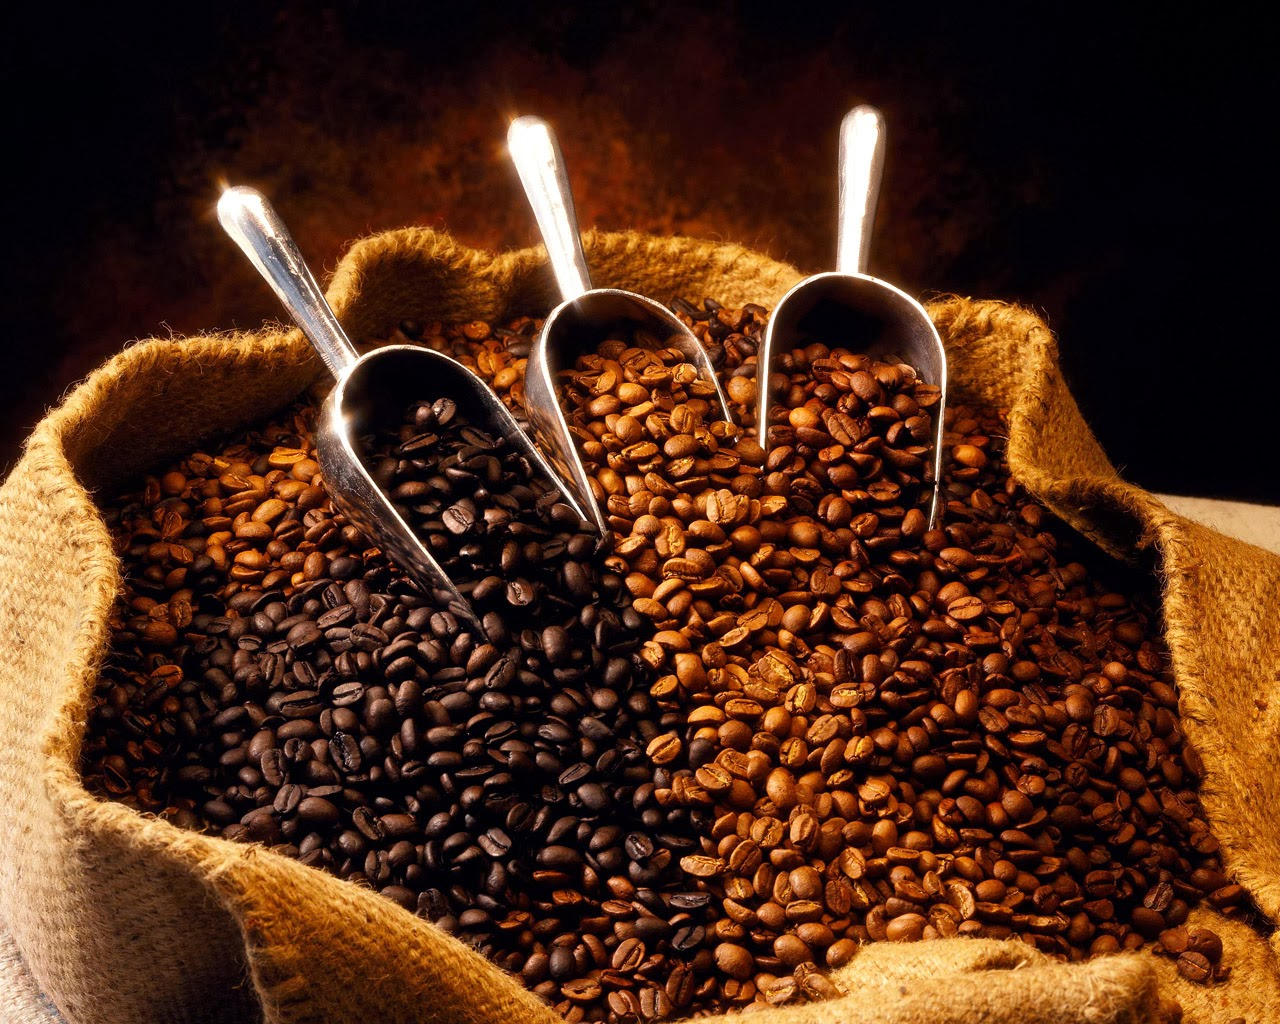 Why Drinking Coffee Increase Calcium Excretion And Affects Bones